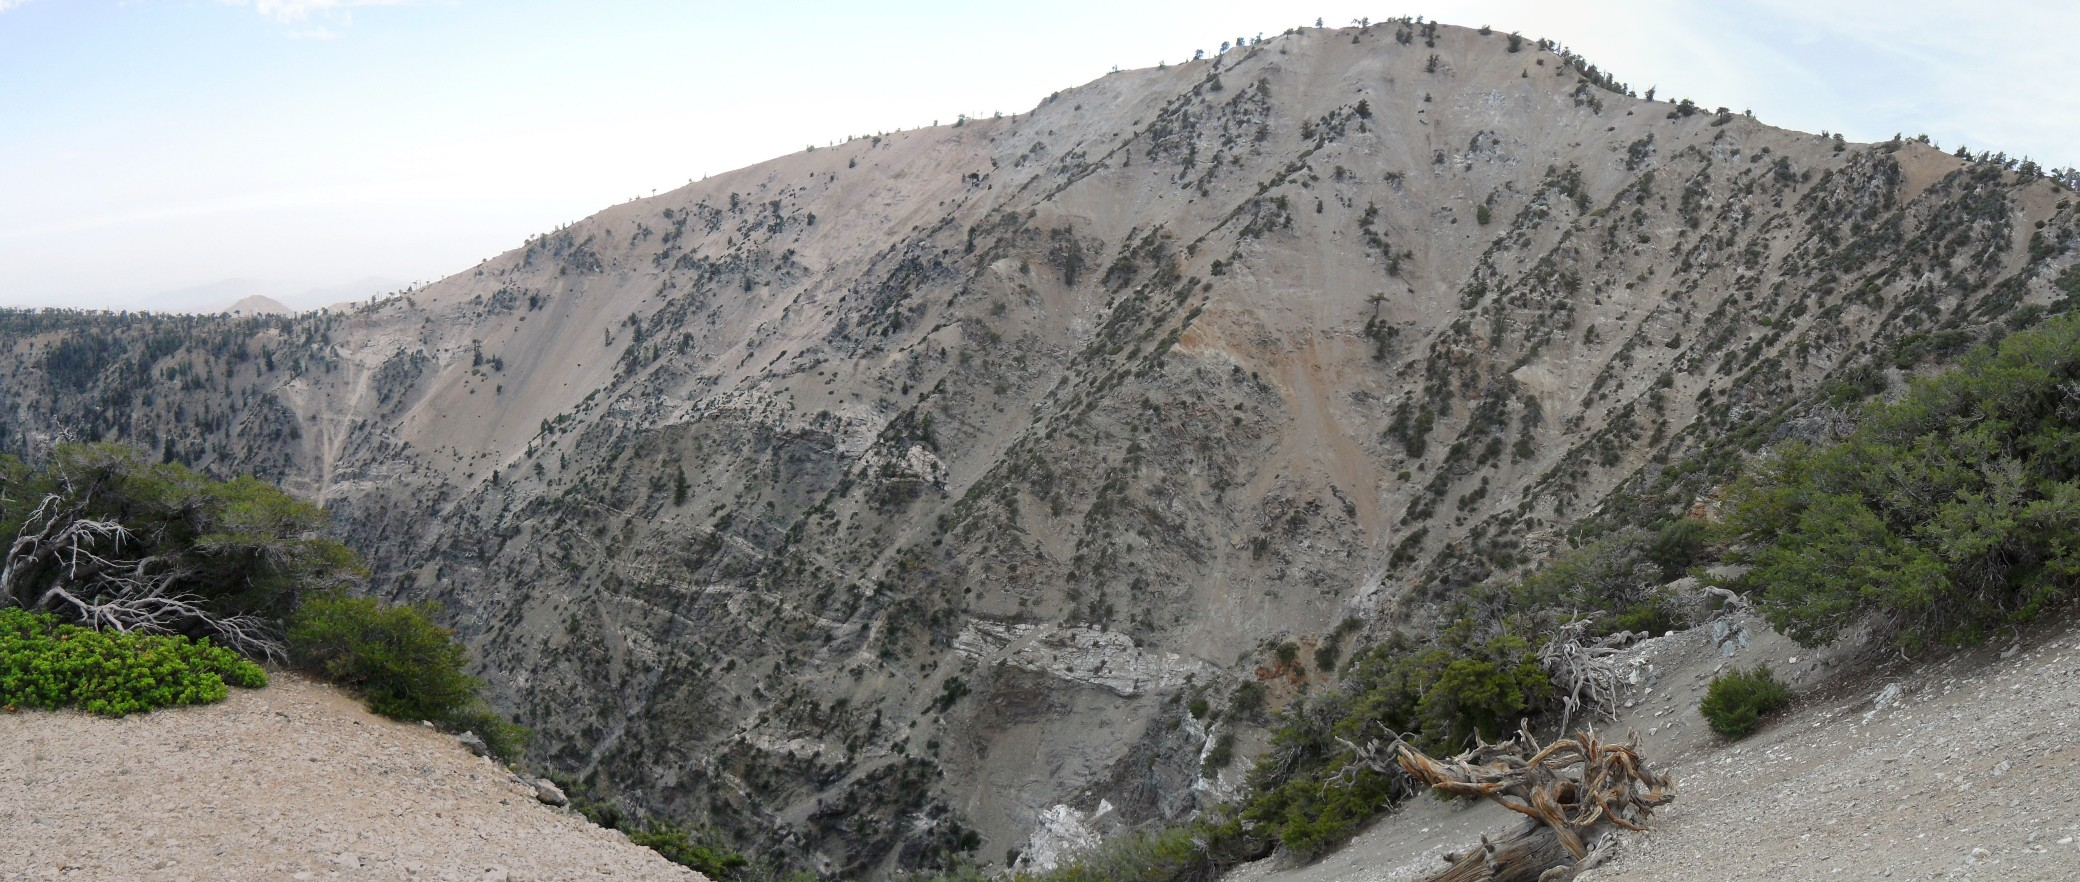 Mount Baden-Powell panorama from east ridge 4004